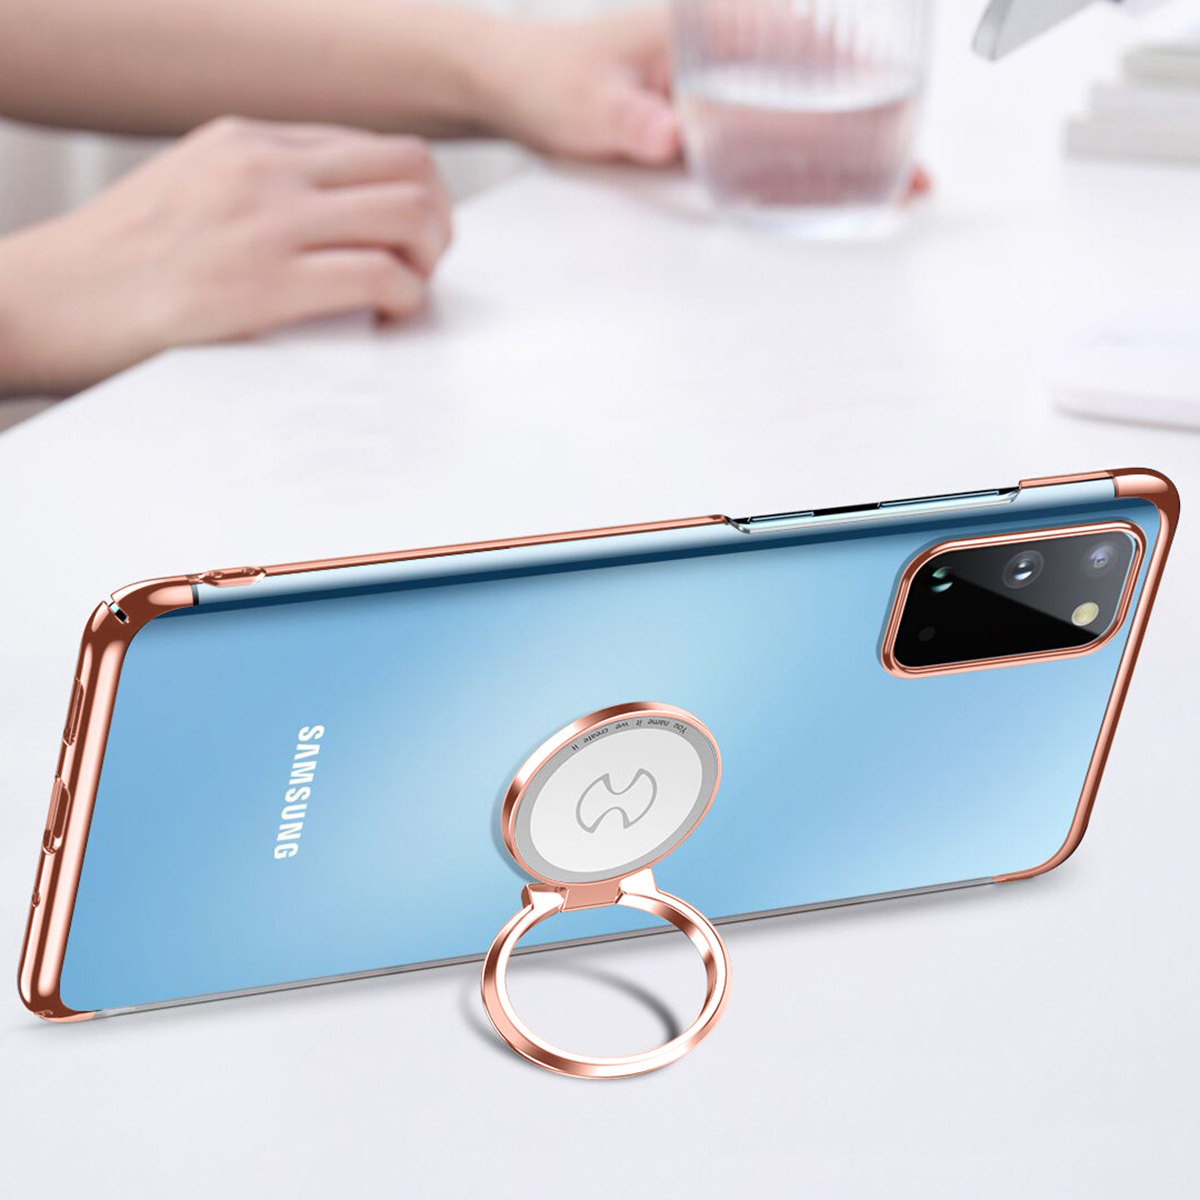 For Samsung Galaxy S20 Uitra S20 Xundd Shockproof Magnetic Ring Stand Case Walmart Com Walmart Com